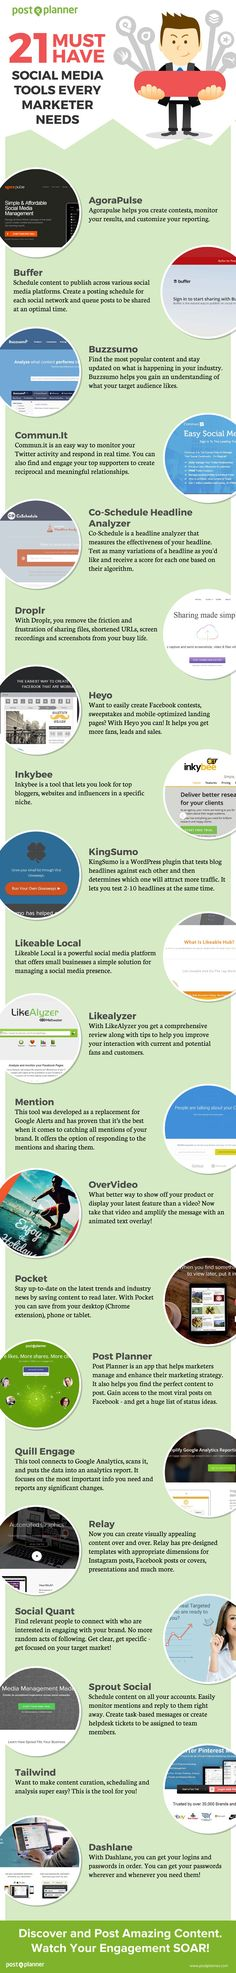 21 MUST HAVE tools for social media Marketers need